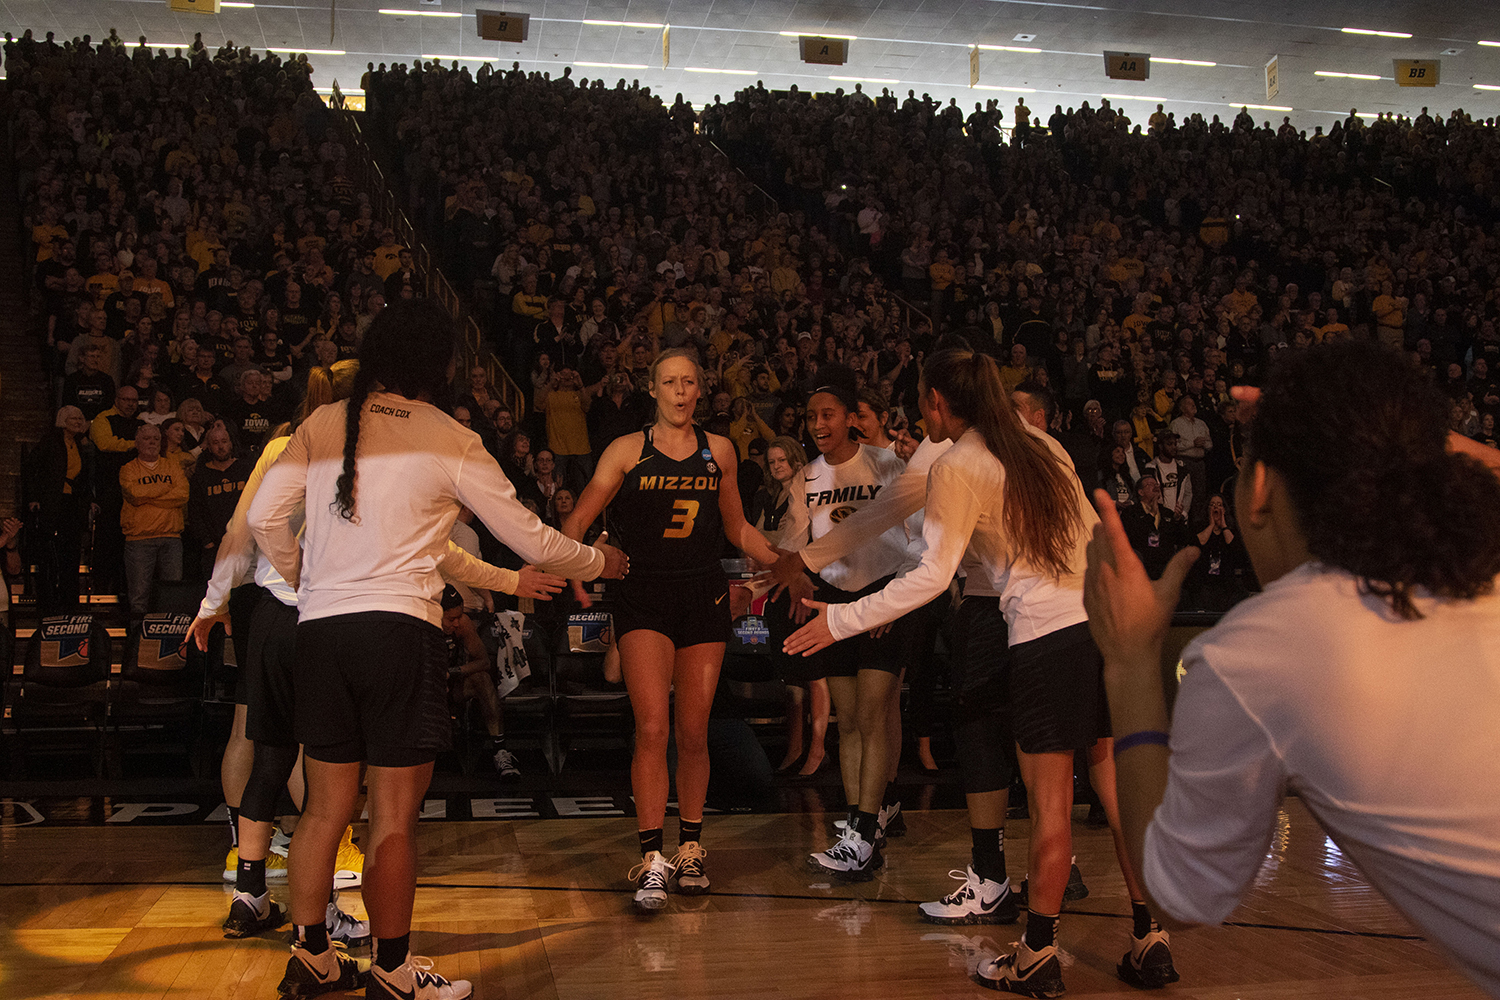 Mizzou+guard+Sophie+Cunningham+is+introduced+during+the+Iowa%2FMizzou+NCAA+Tournament+second+round+women%27s+basketball+game+in+Carver-Hawkeye+Arena++on+Sunday%2C+March+24%2C+2019.+The+Hawkeyes+defeated+the+Tigers%2C+68-52.